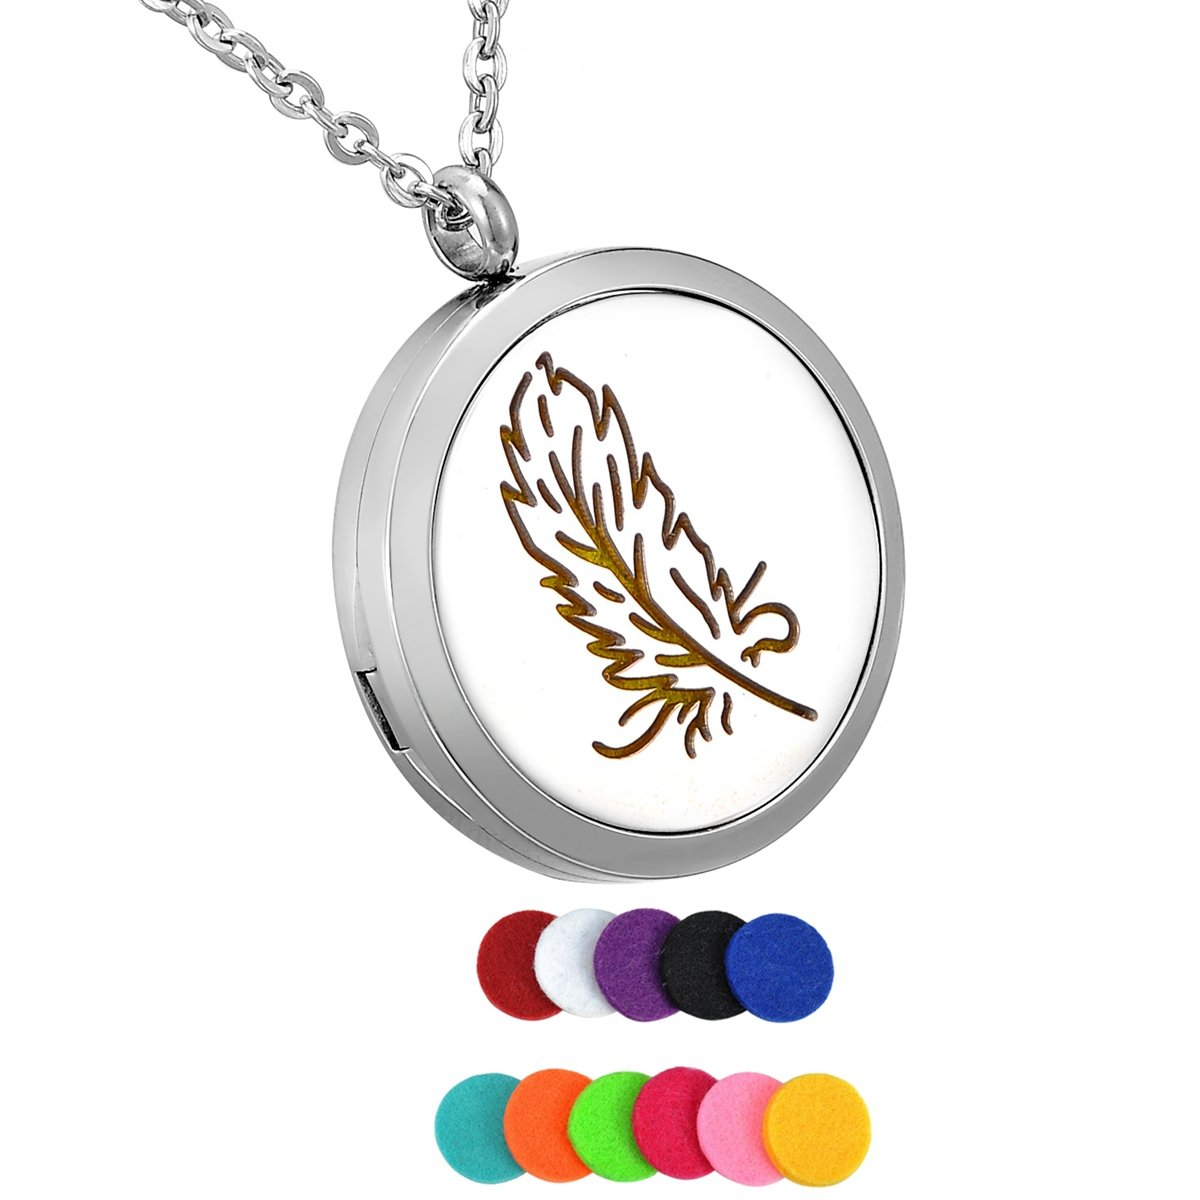 HooAMI Aromatherapy Essential Oil Diffuser Necklace - Feather Stainless Steel Locket Pendant